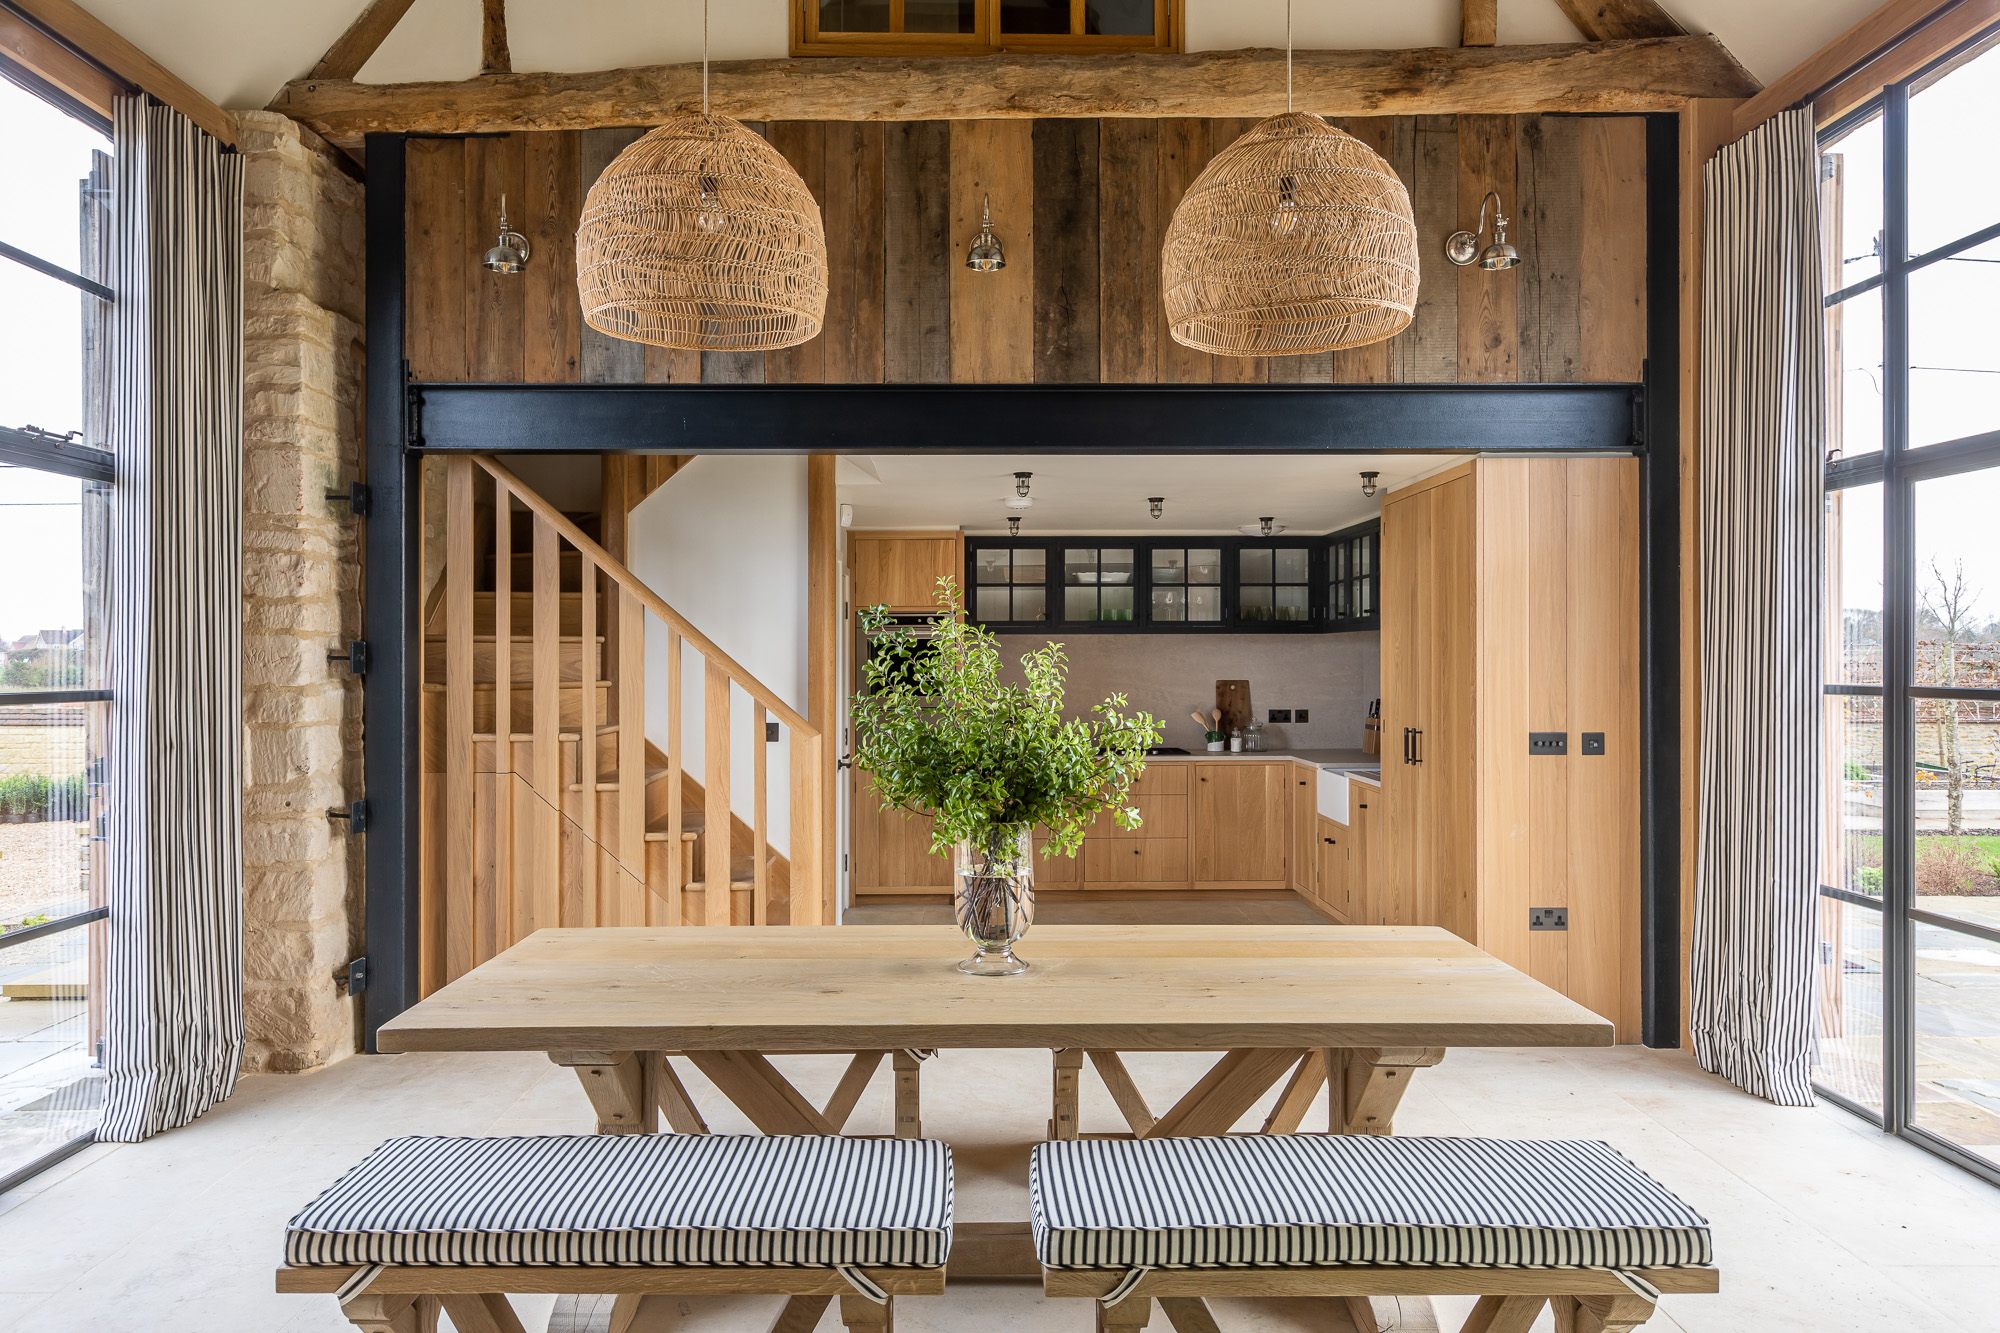 jonathan bond, interior photographer, wooden dining room table & benches, marnhull, dorset